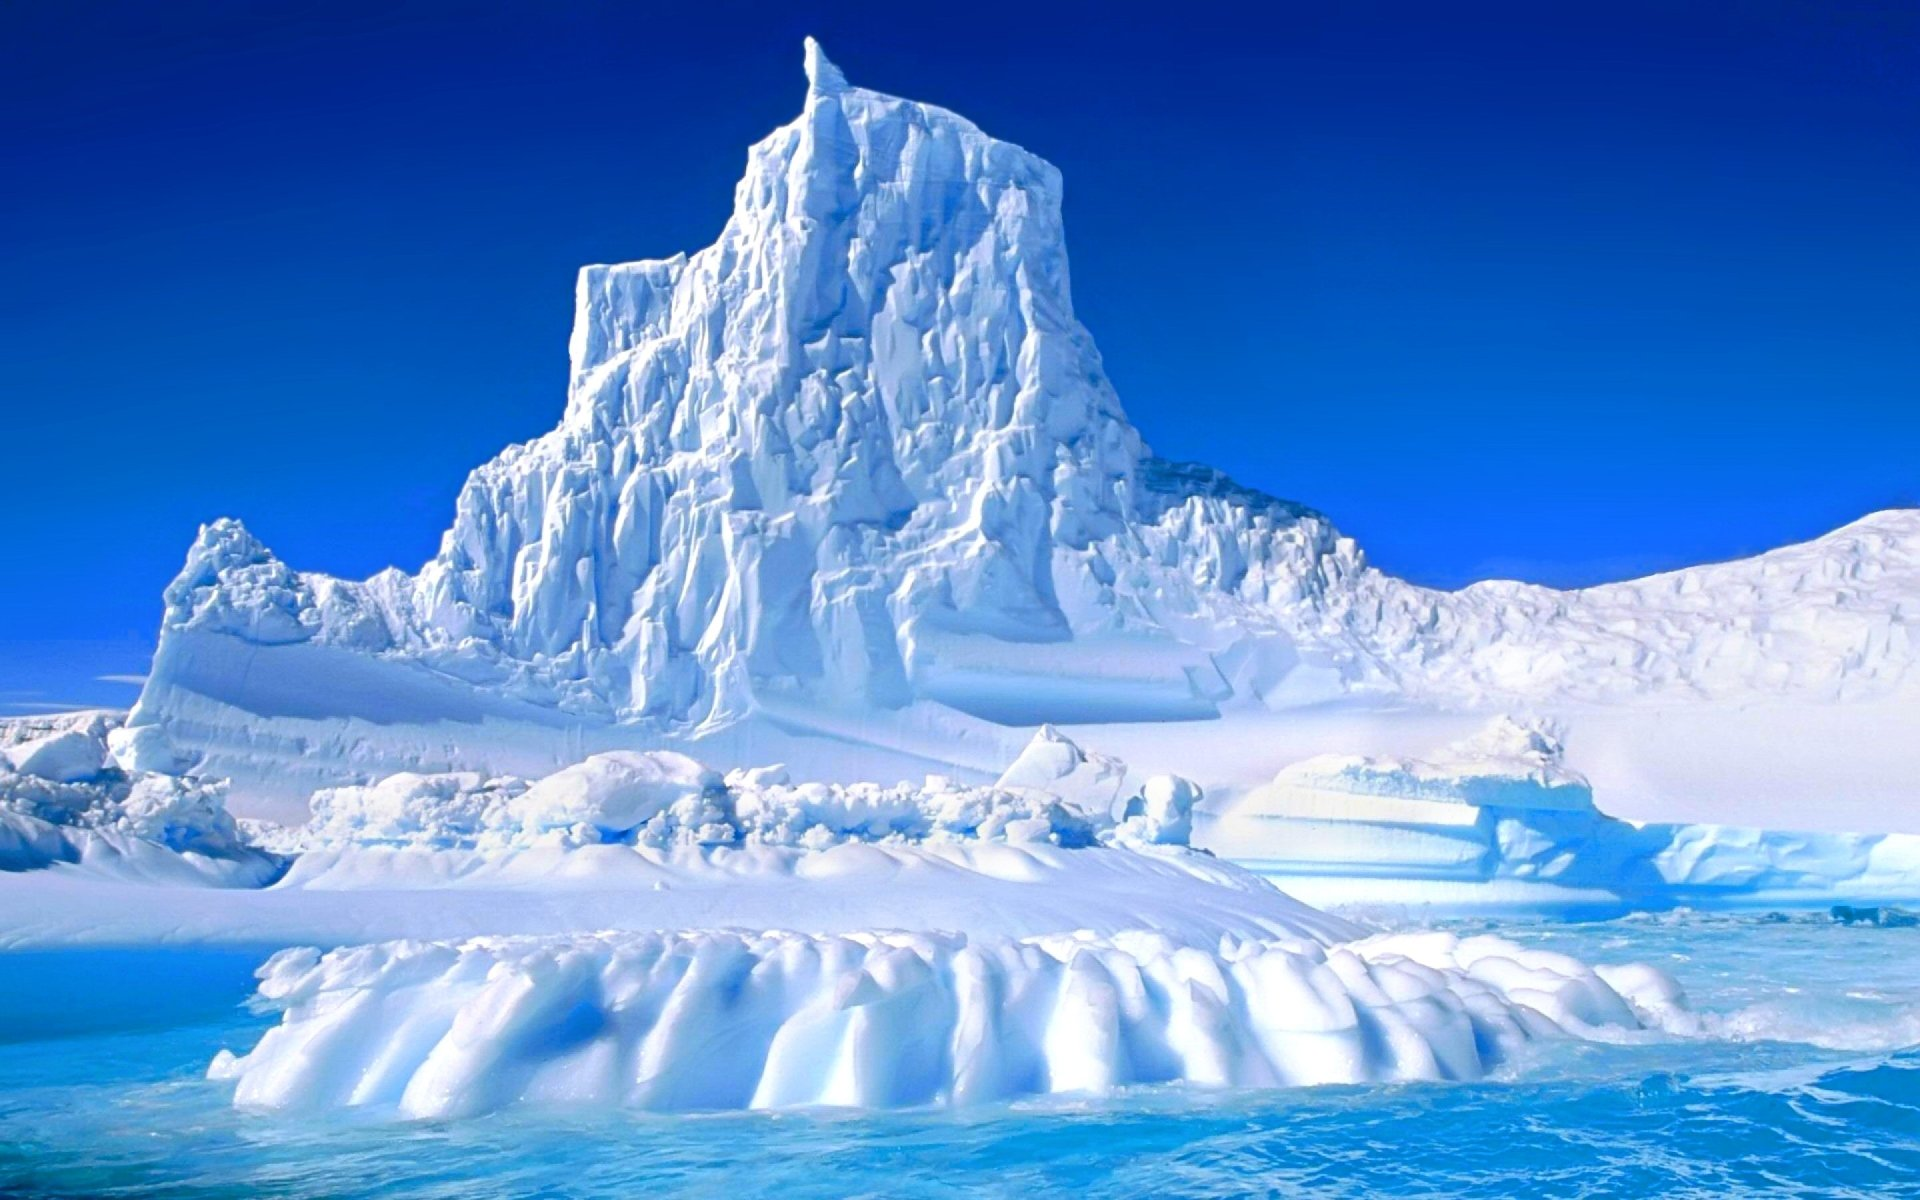 Earth - Winter  Ice Glacier Iceberg Nature Wallpaper